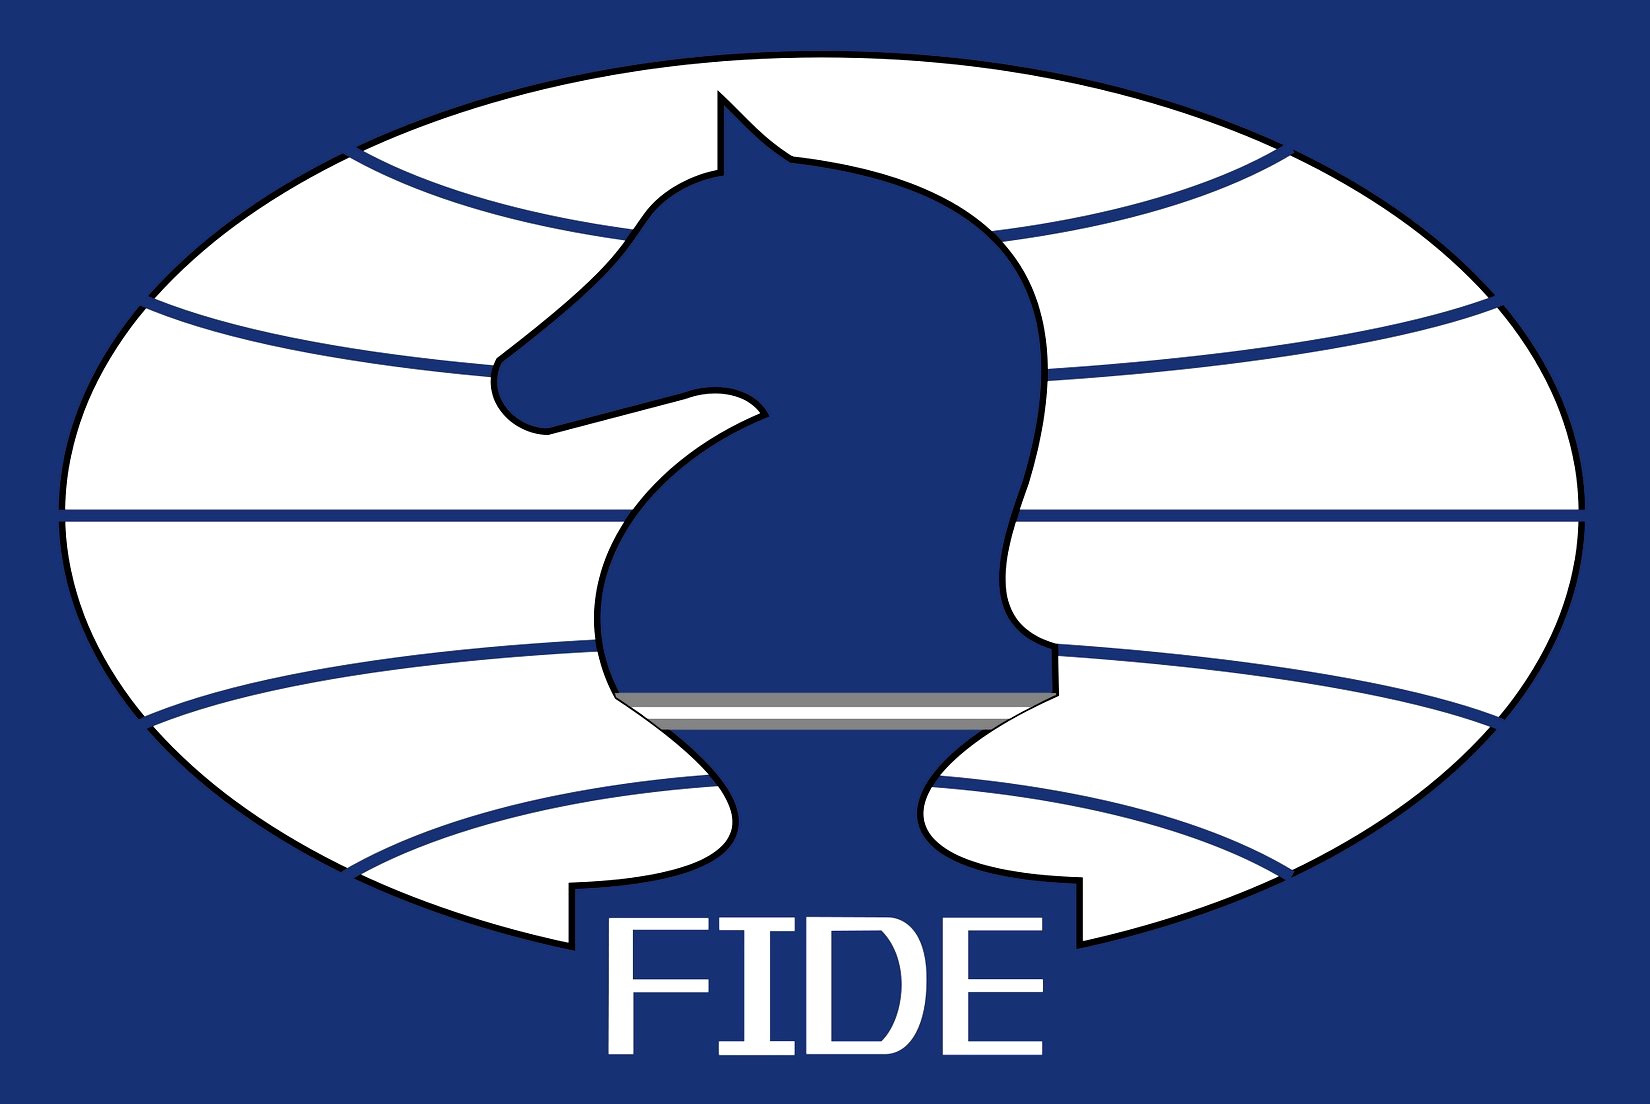 Assembly Icon: Flipboard: 2018 FIDE General Assembly Decisions